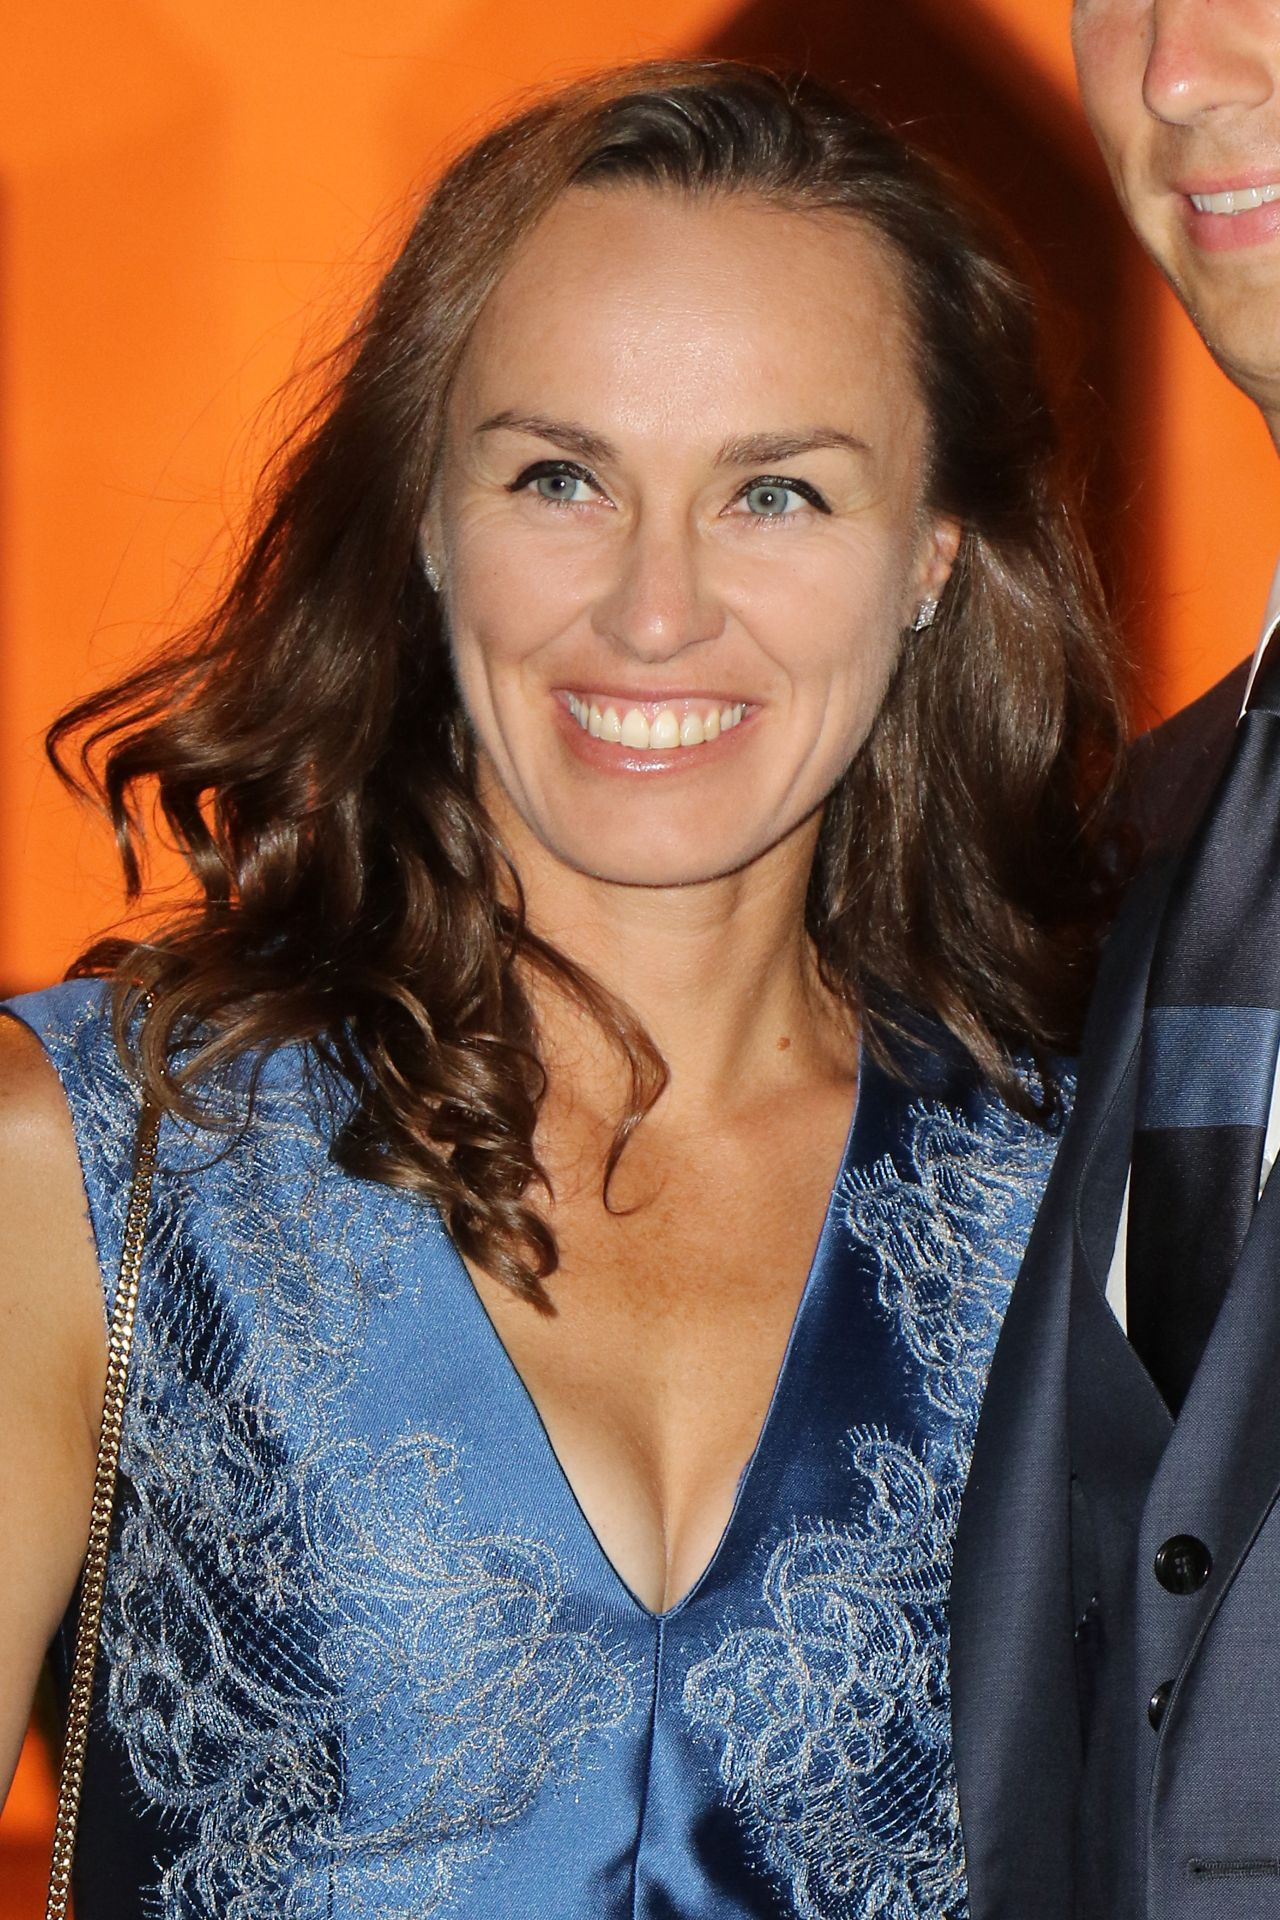 Martina Hingis Latest Photos Celebmafia